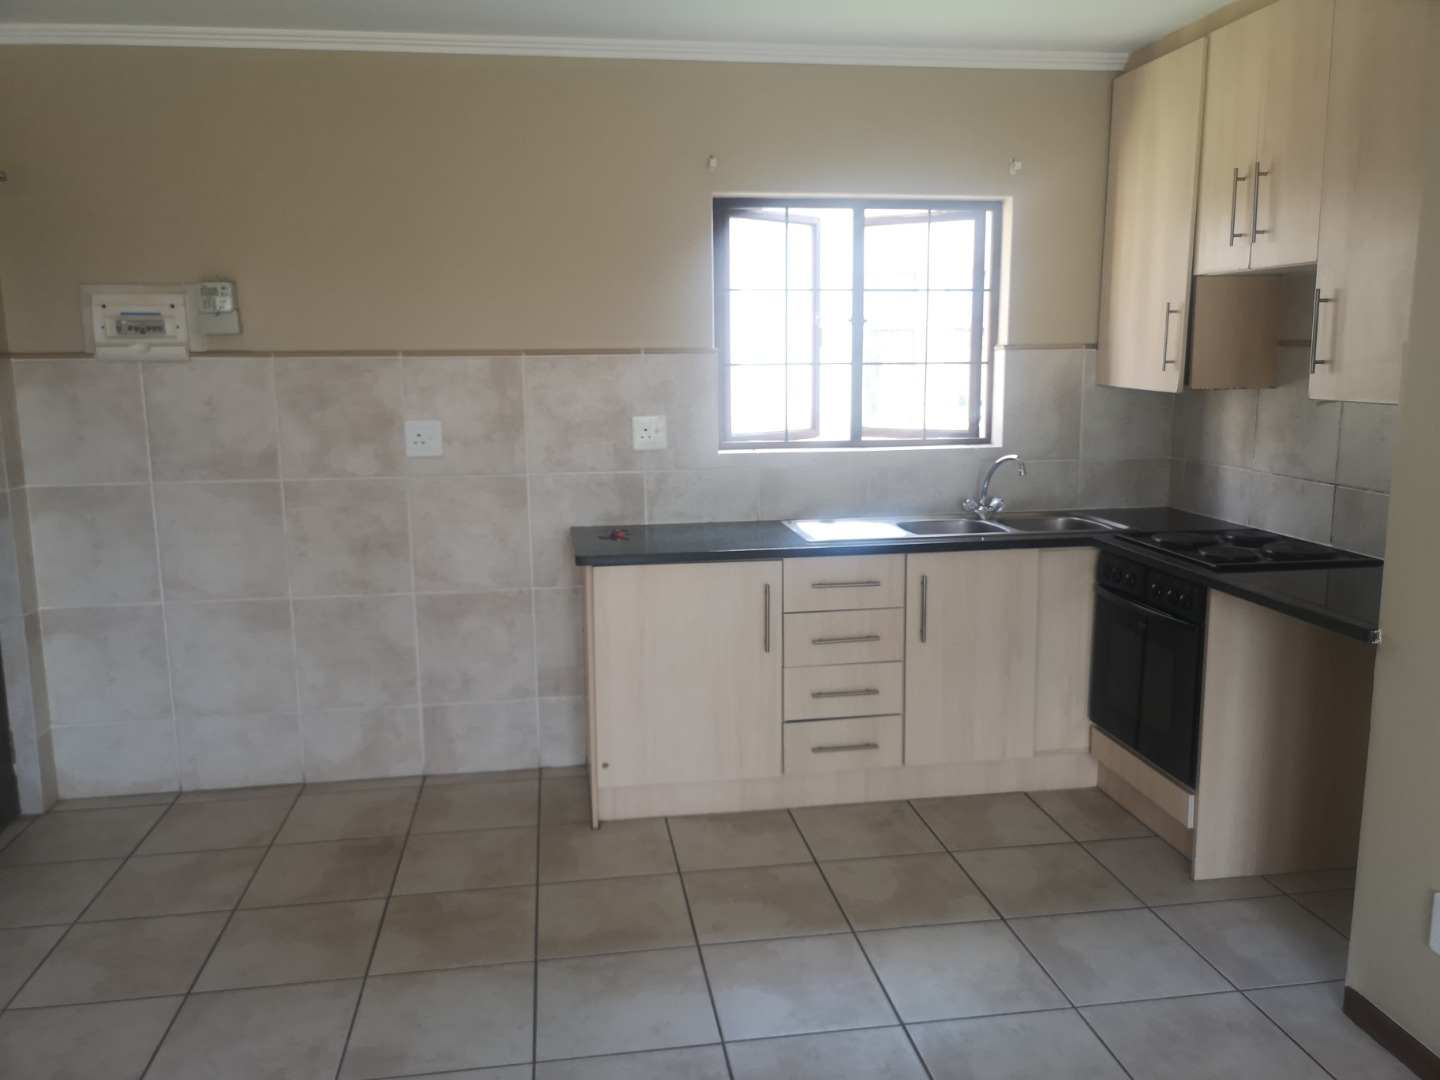 1 Bedroom Apartment / Flat For Sale in Summerfields Estate